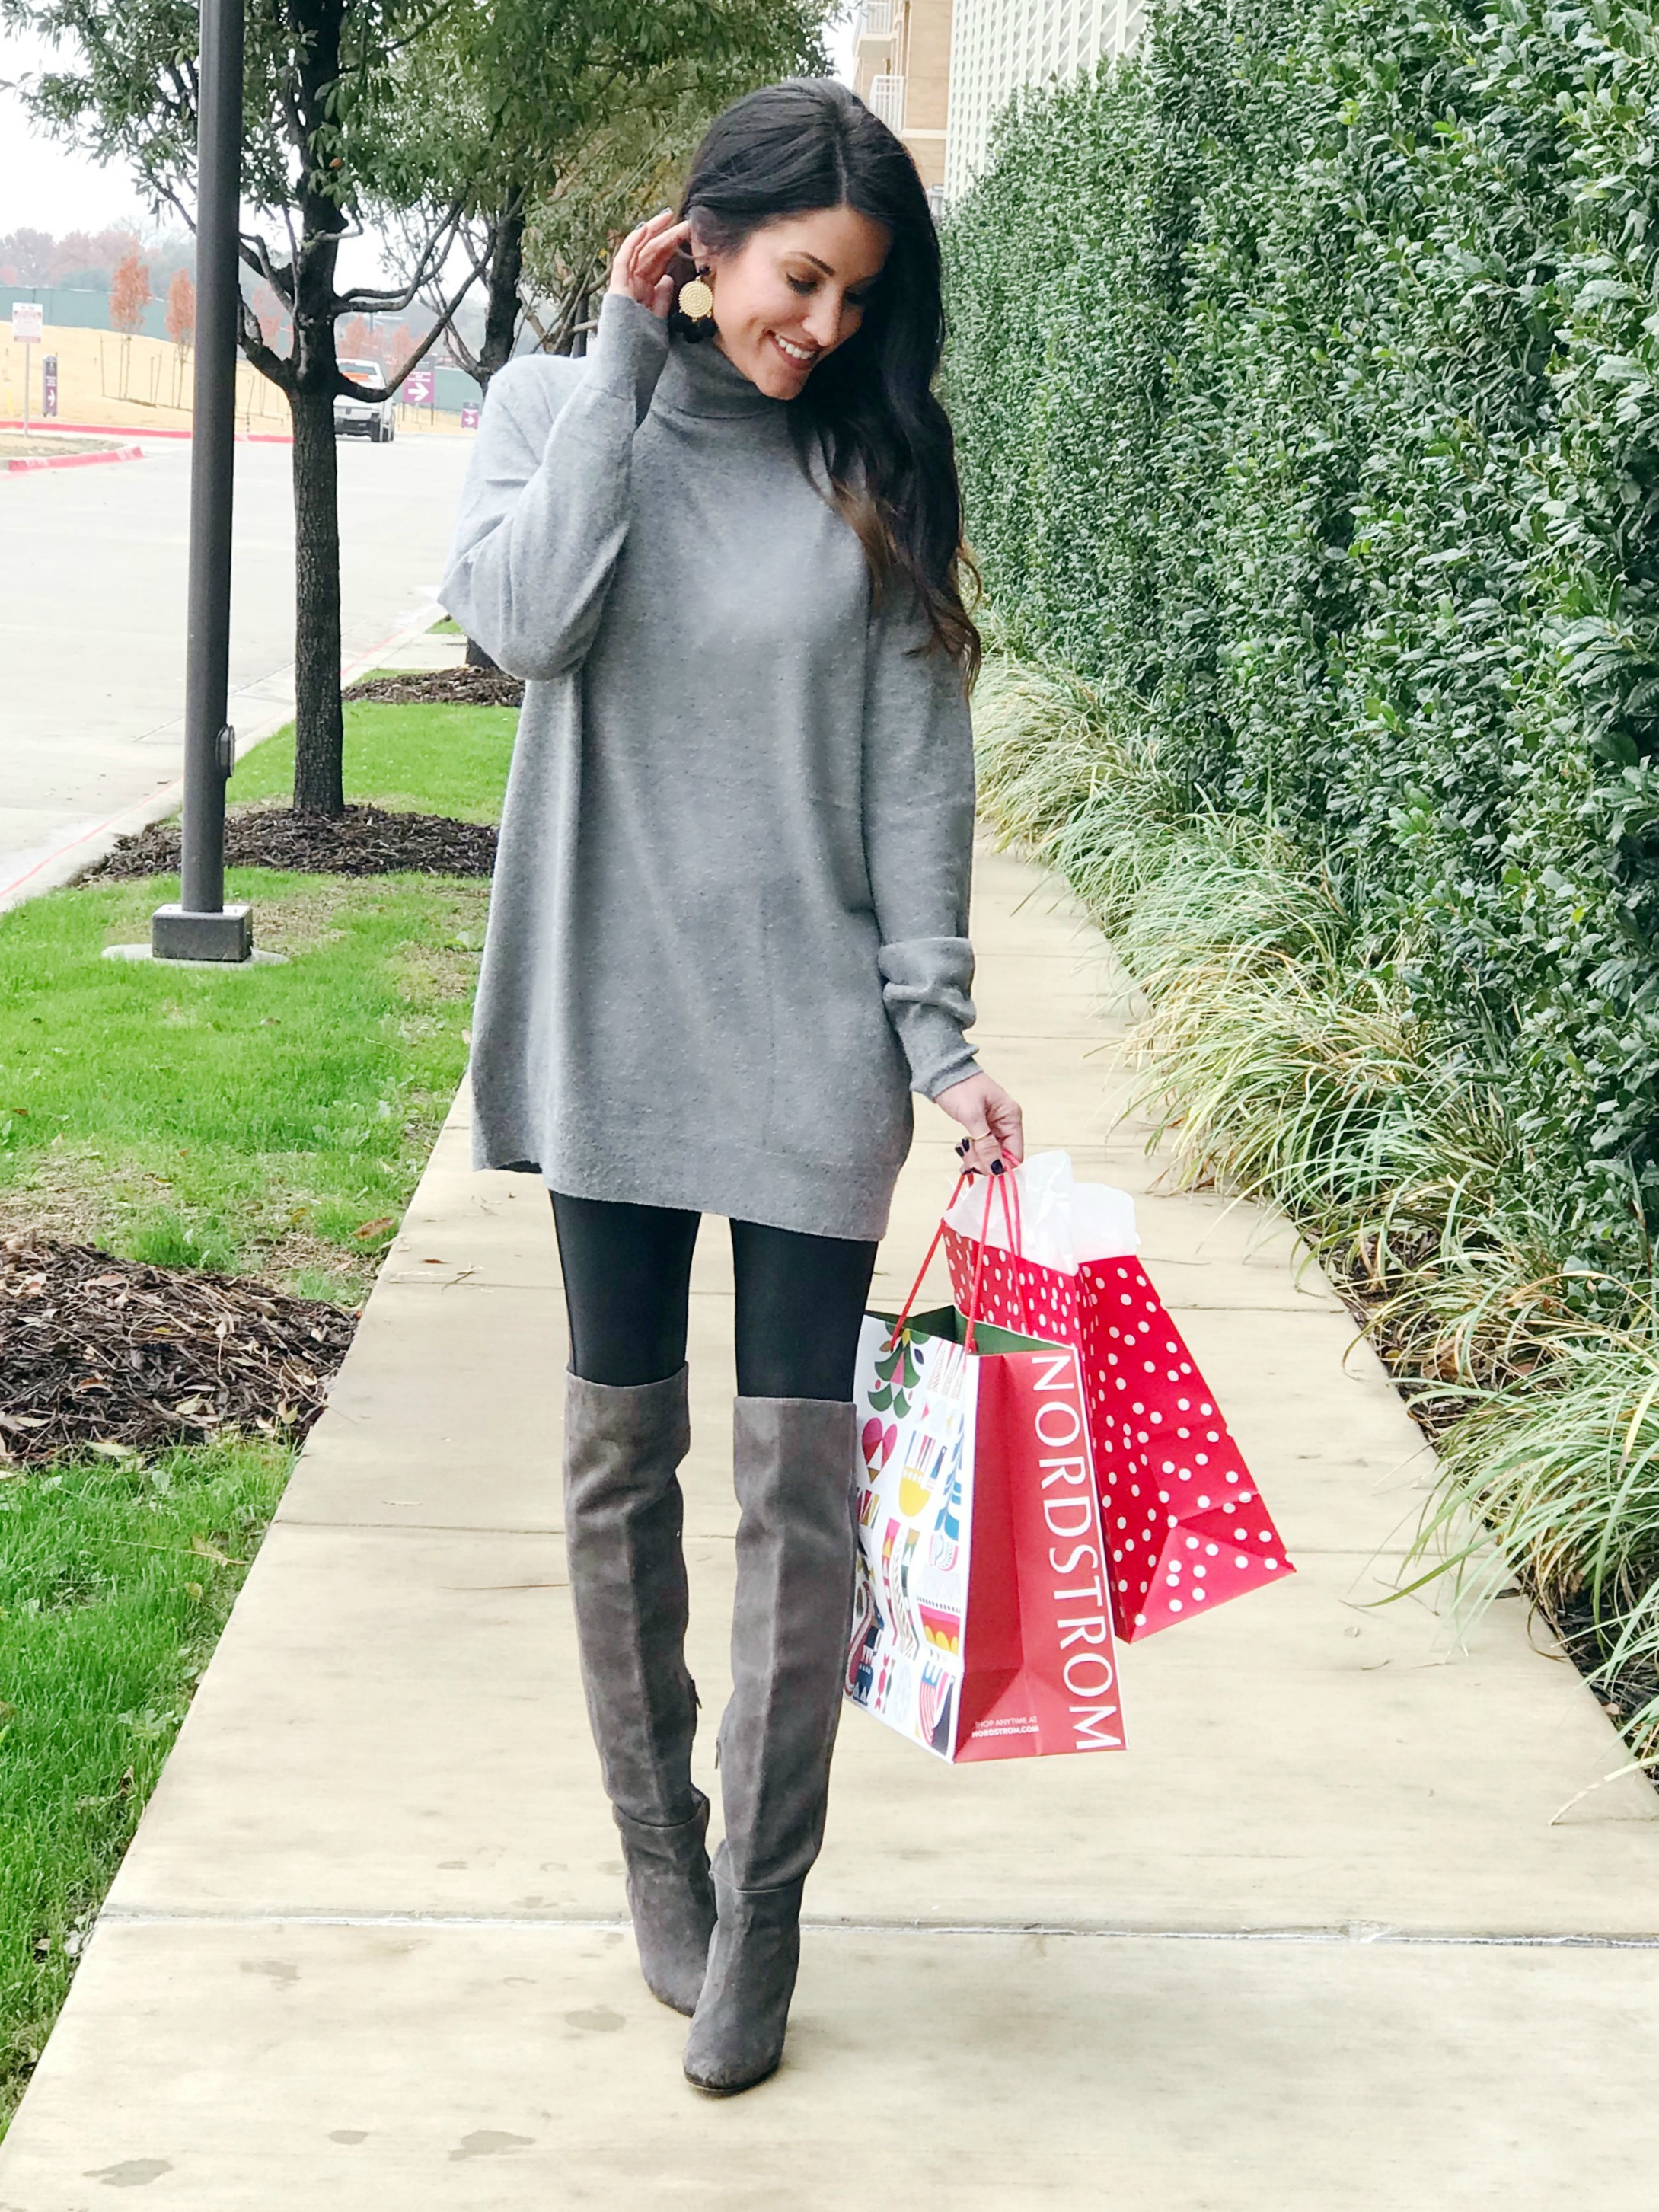 Tunic sweater and boots